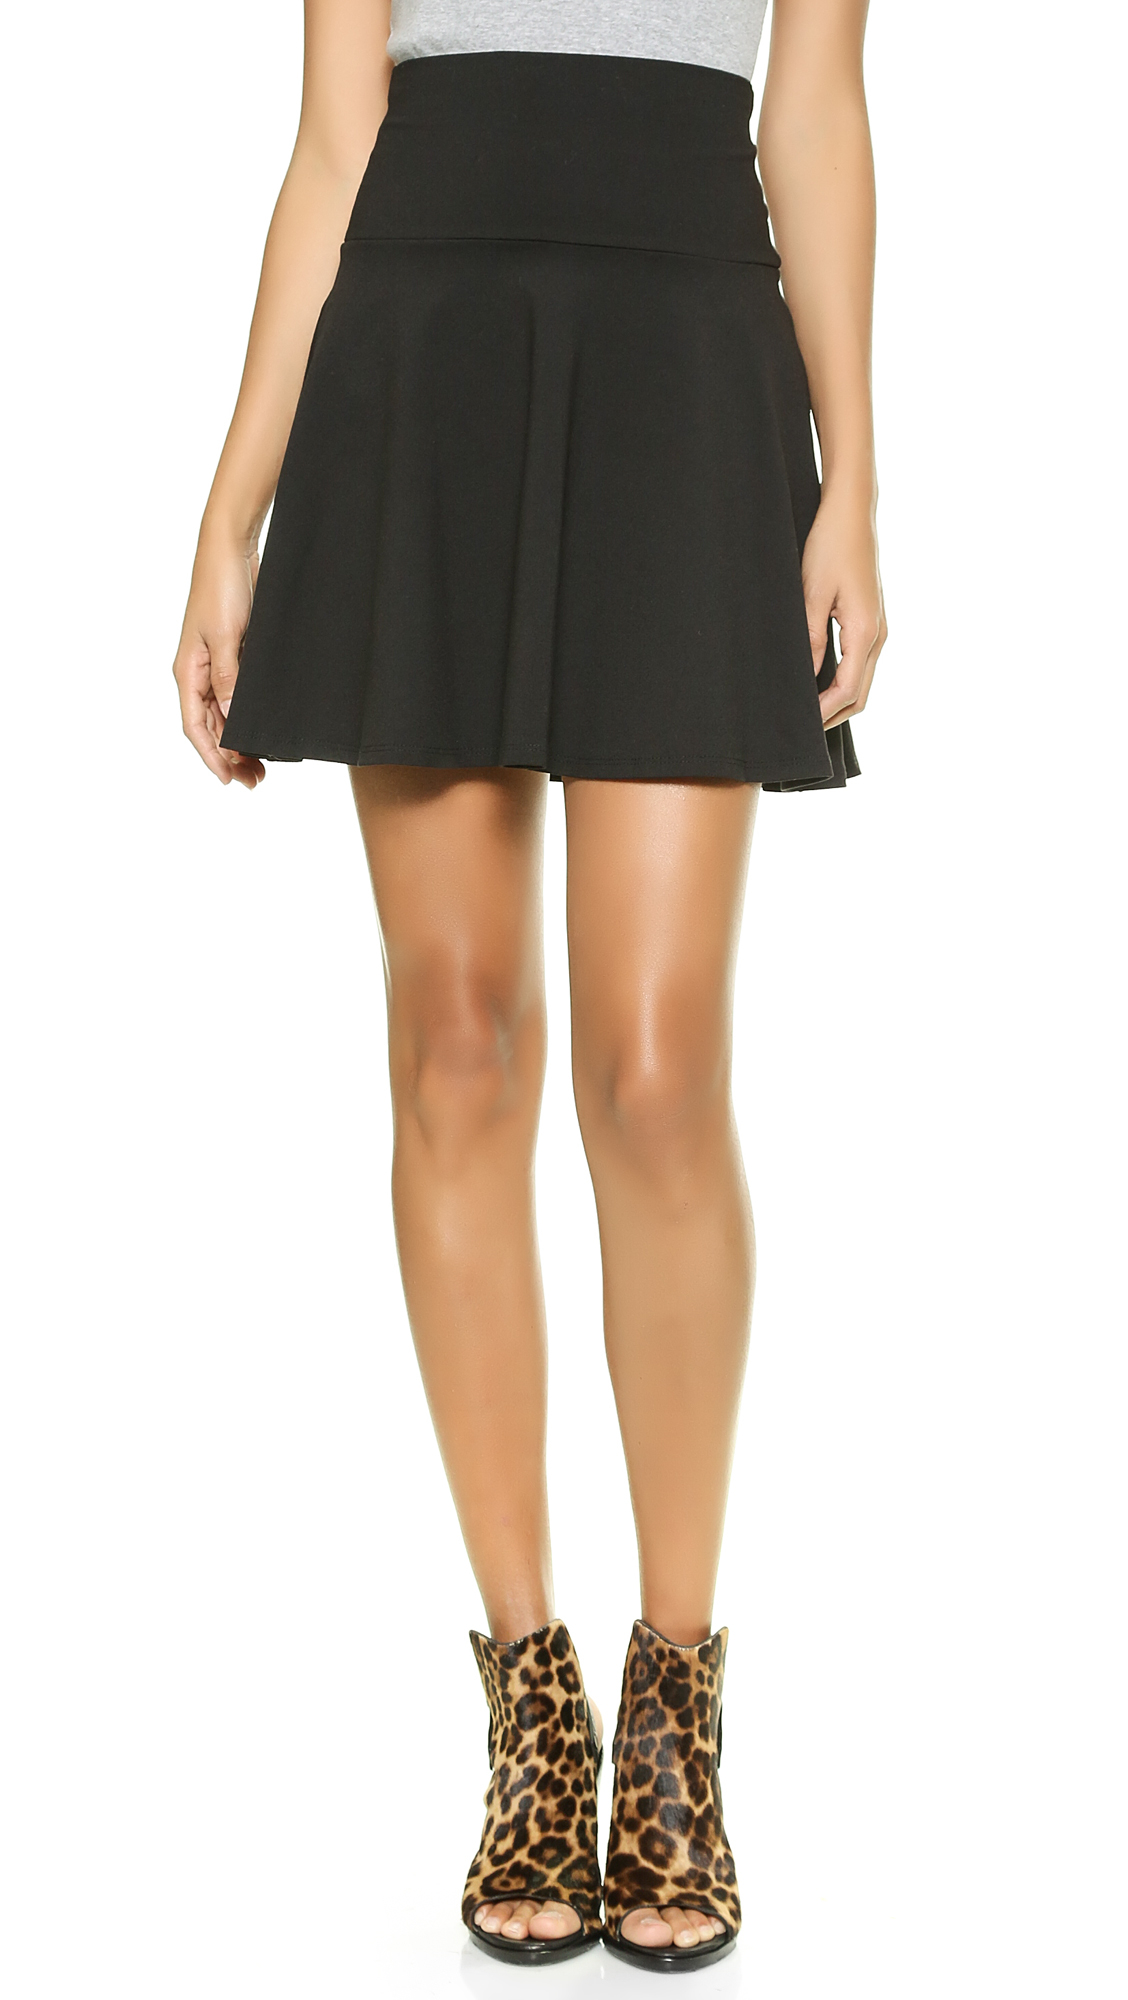 Susana monaco High Waisted Flare Skirt in Black | Lyst